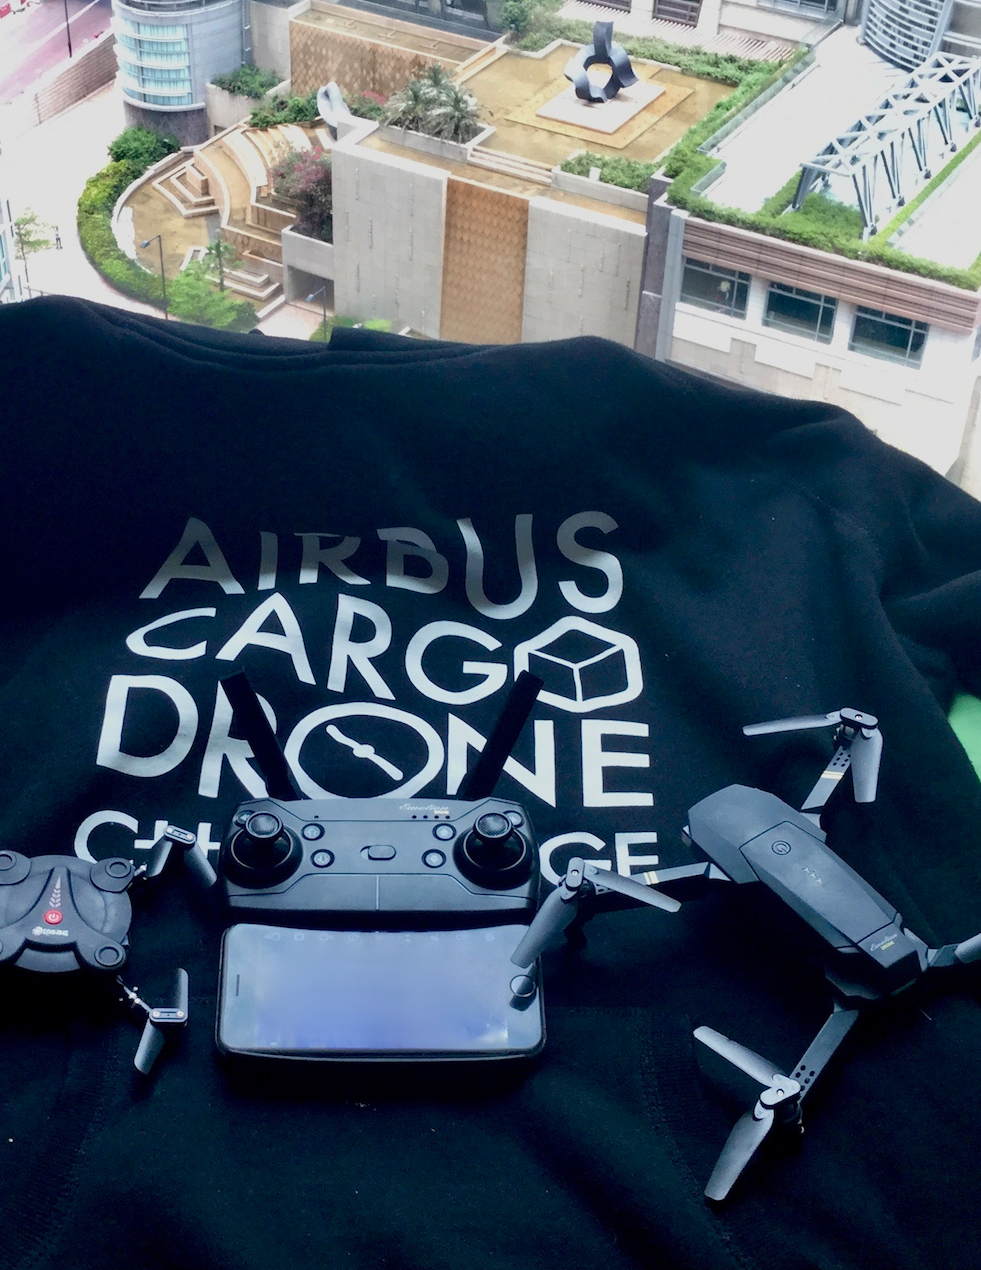 A good day to crush some drones